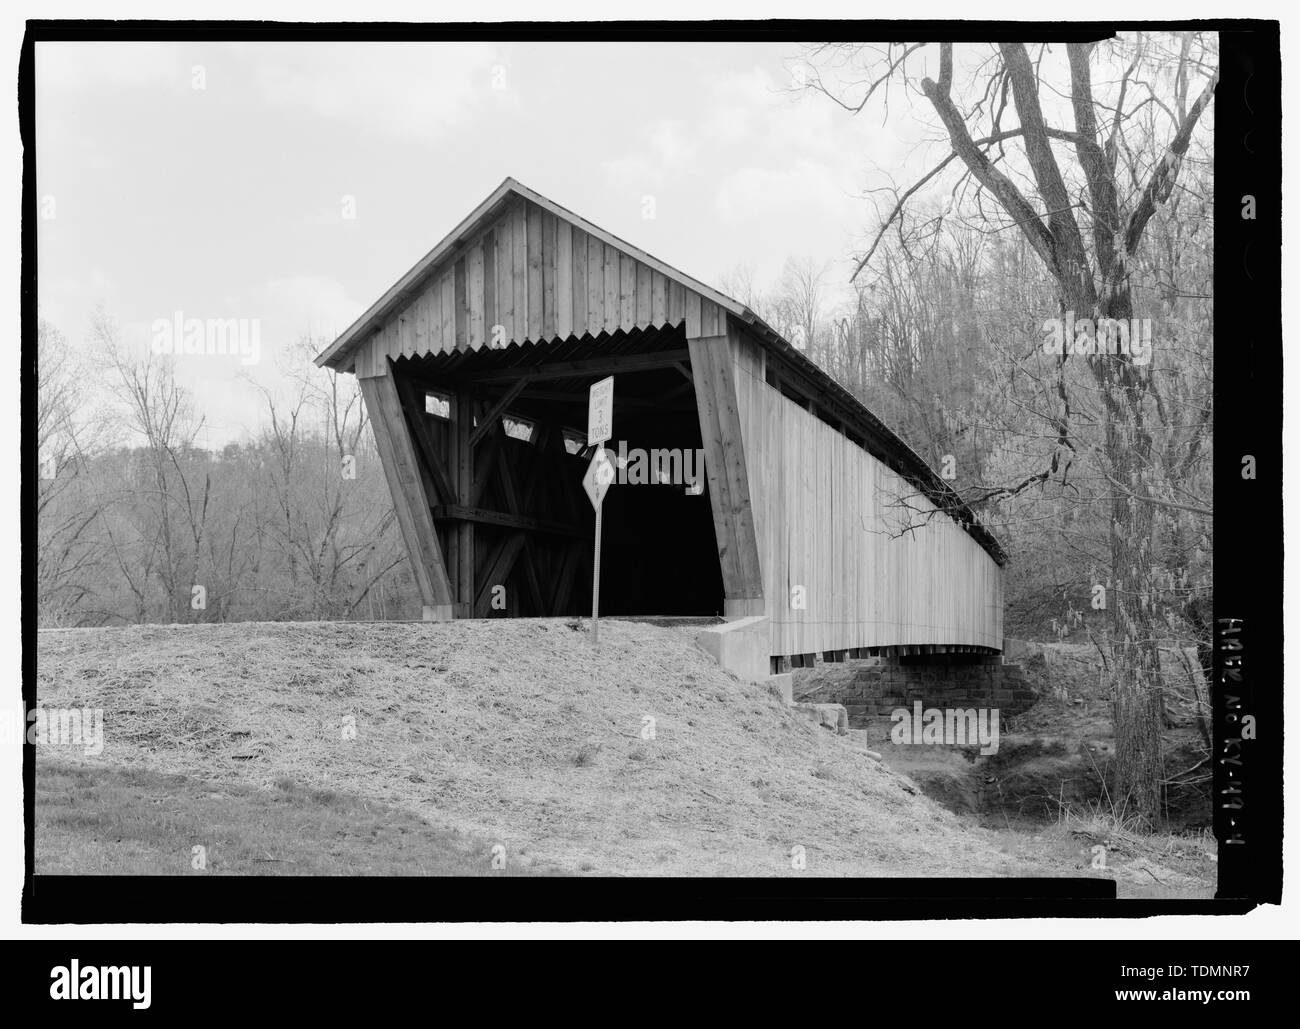 Perspective. - Bennett's Mill Bridge, Spanning Tygart's Creek, East Tygart's Creek Road (CR 1215), Lynn, Greenup County, KY; Bennett, B F; Reid, A L; Wheeler, Isaac Hastings; Wheeler, William; McGee, E A; Darlington, Joseph; Darlington, Gabriel; Bennett, William  P; Bennett, Benjamin  F; Federal Highway Association; Bower Bridge Company; Bower, Louis; Intech Contracting; Marston, Christopher, project manager; Christianson, Justine, transmitter; Federal Highway Administration, sponsor - Stock Image